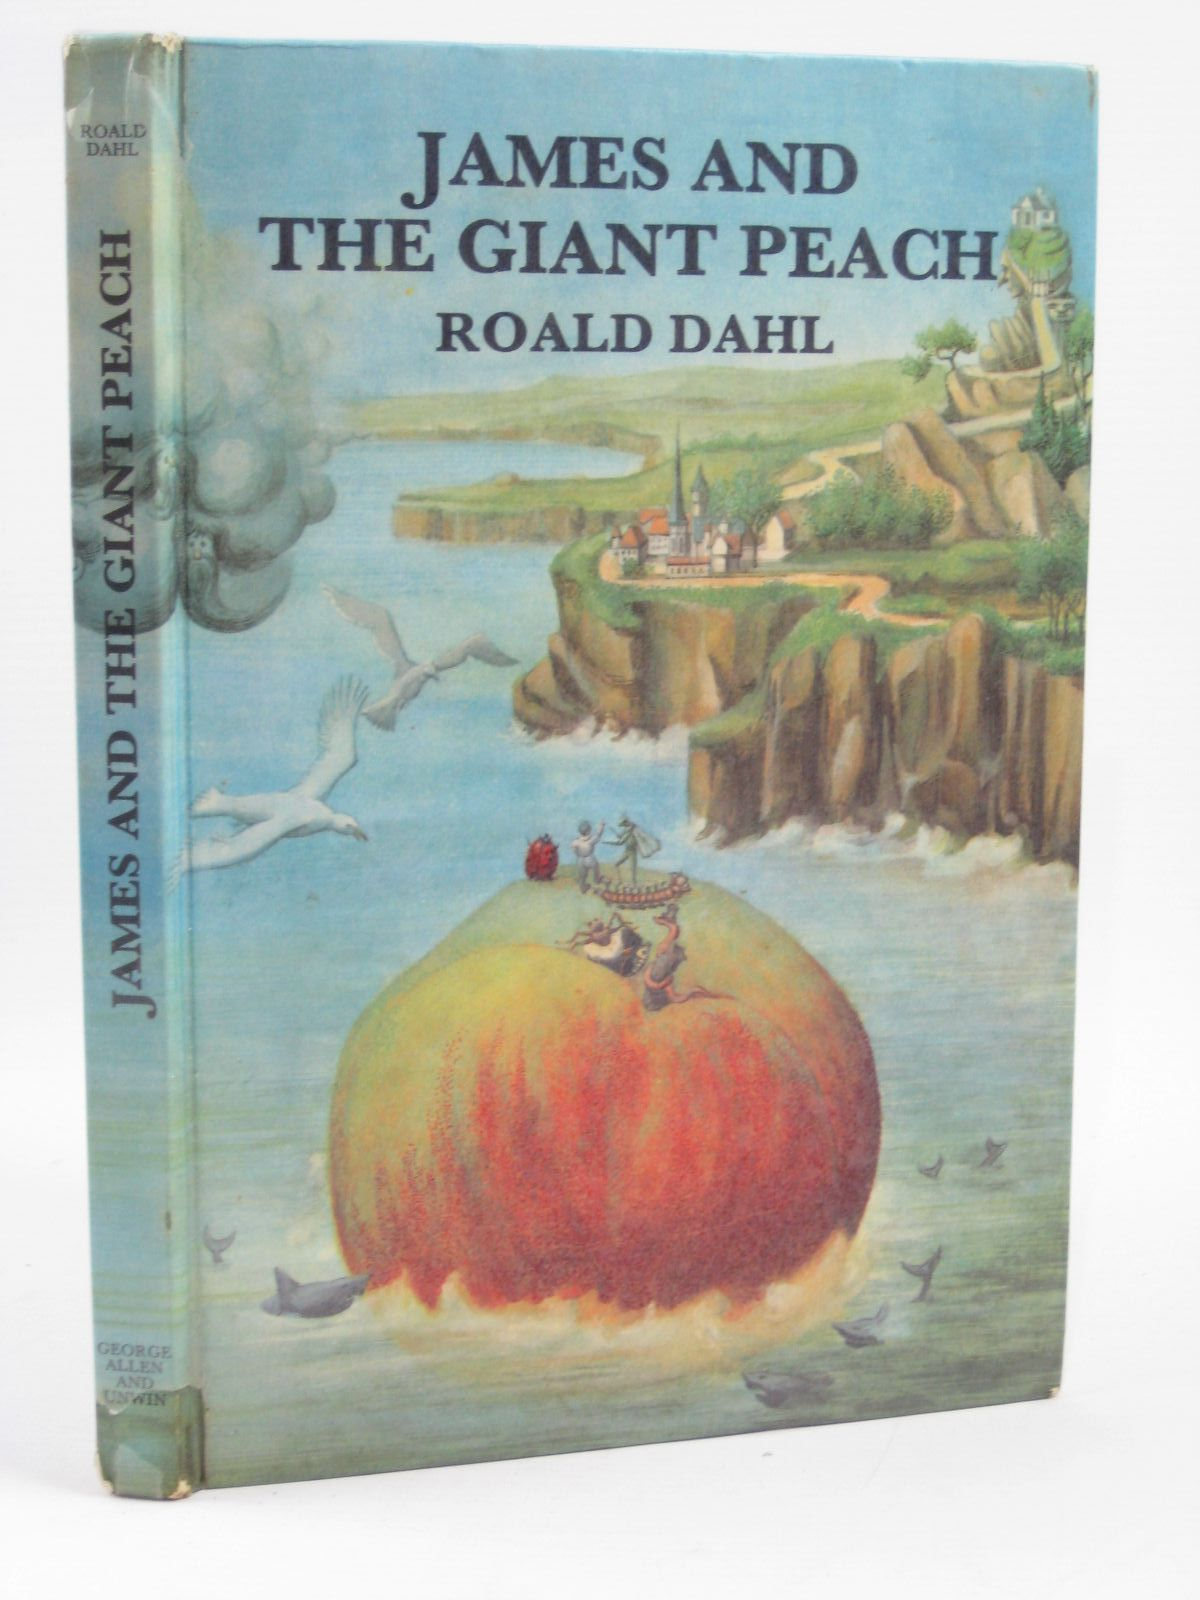 Photo of JAMES AND THE GIANT PEACH written by Dahl, Roald illustrated by Simeon, Michel published by George Allen & Unwin Ltd. (STOCK CODE: 1406452)  for sale by Stella & Rose's Books